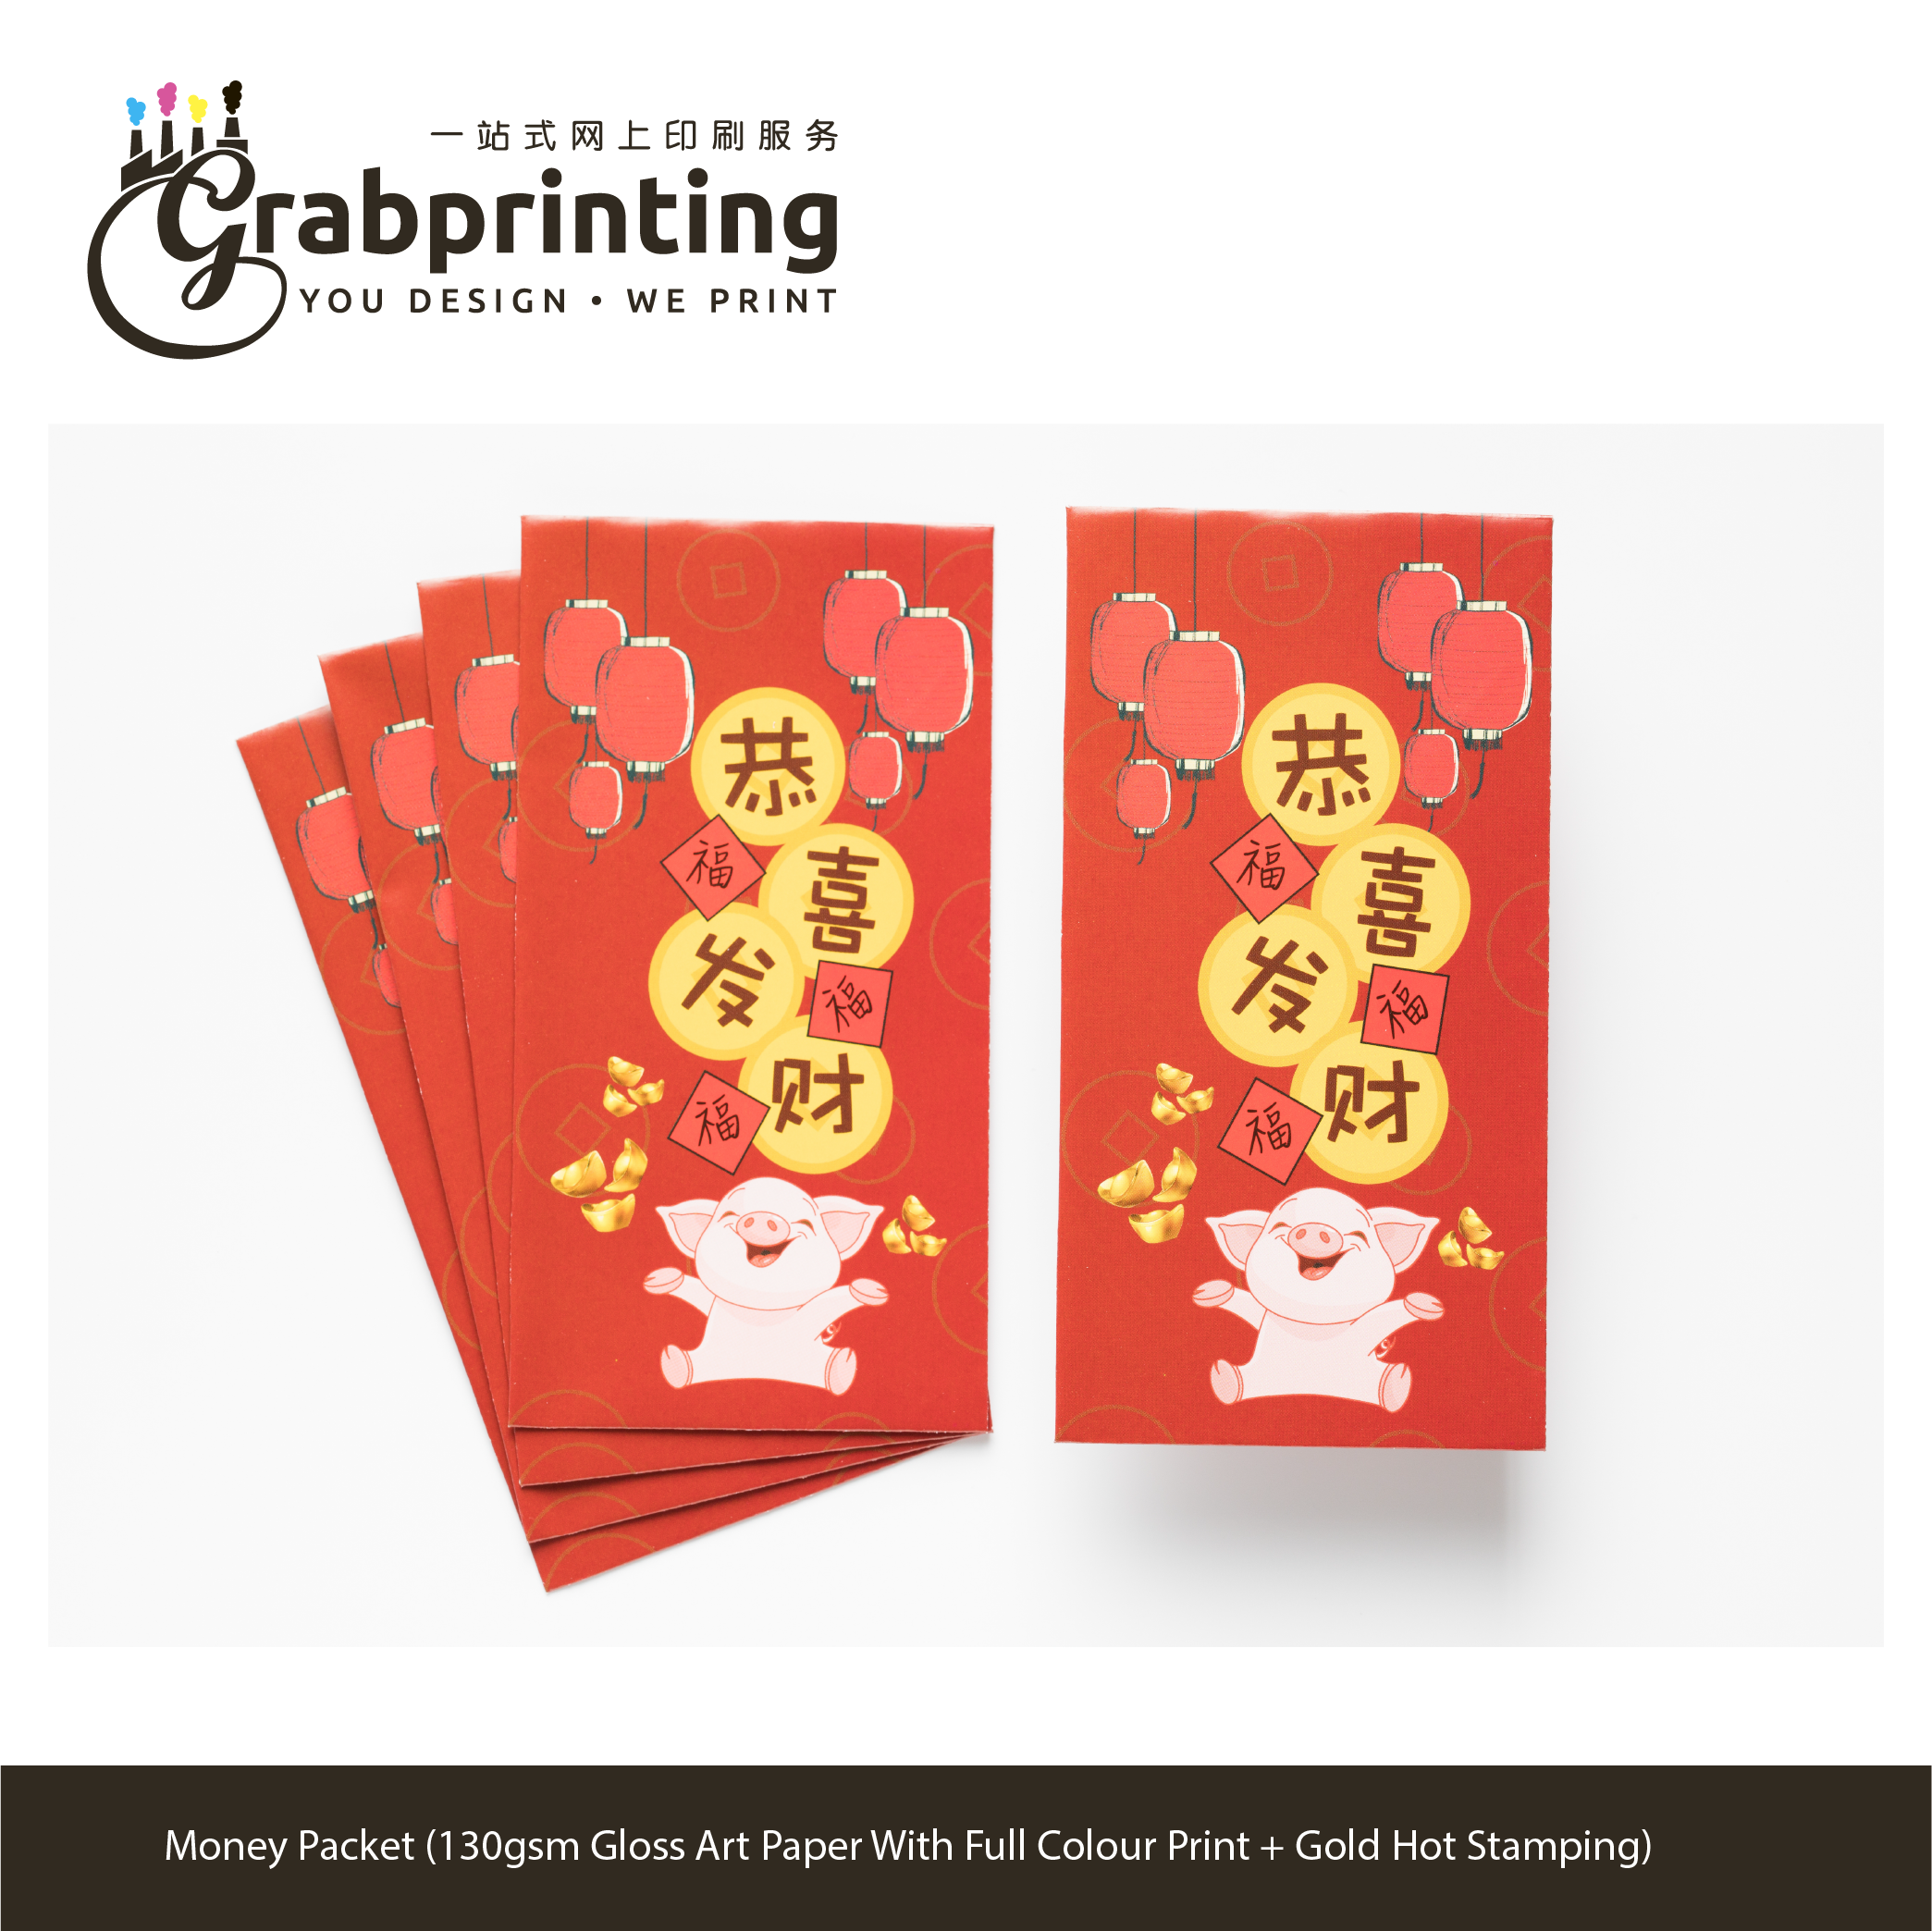 Custom Print Money Packet (130gsm Gloss Art Paper) grabprinting 06 Money Packet 130gsm Gloss Art Paper With Full Colour Print Gold Hot Stamping 501px 501px